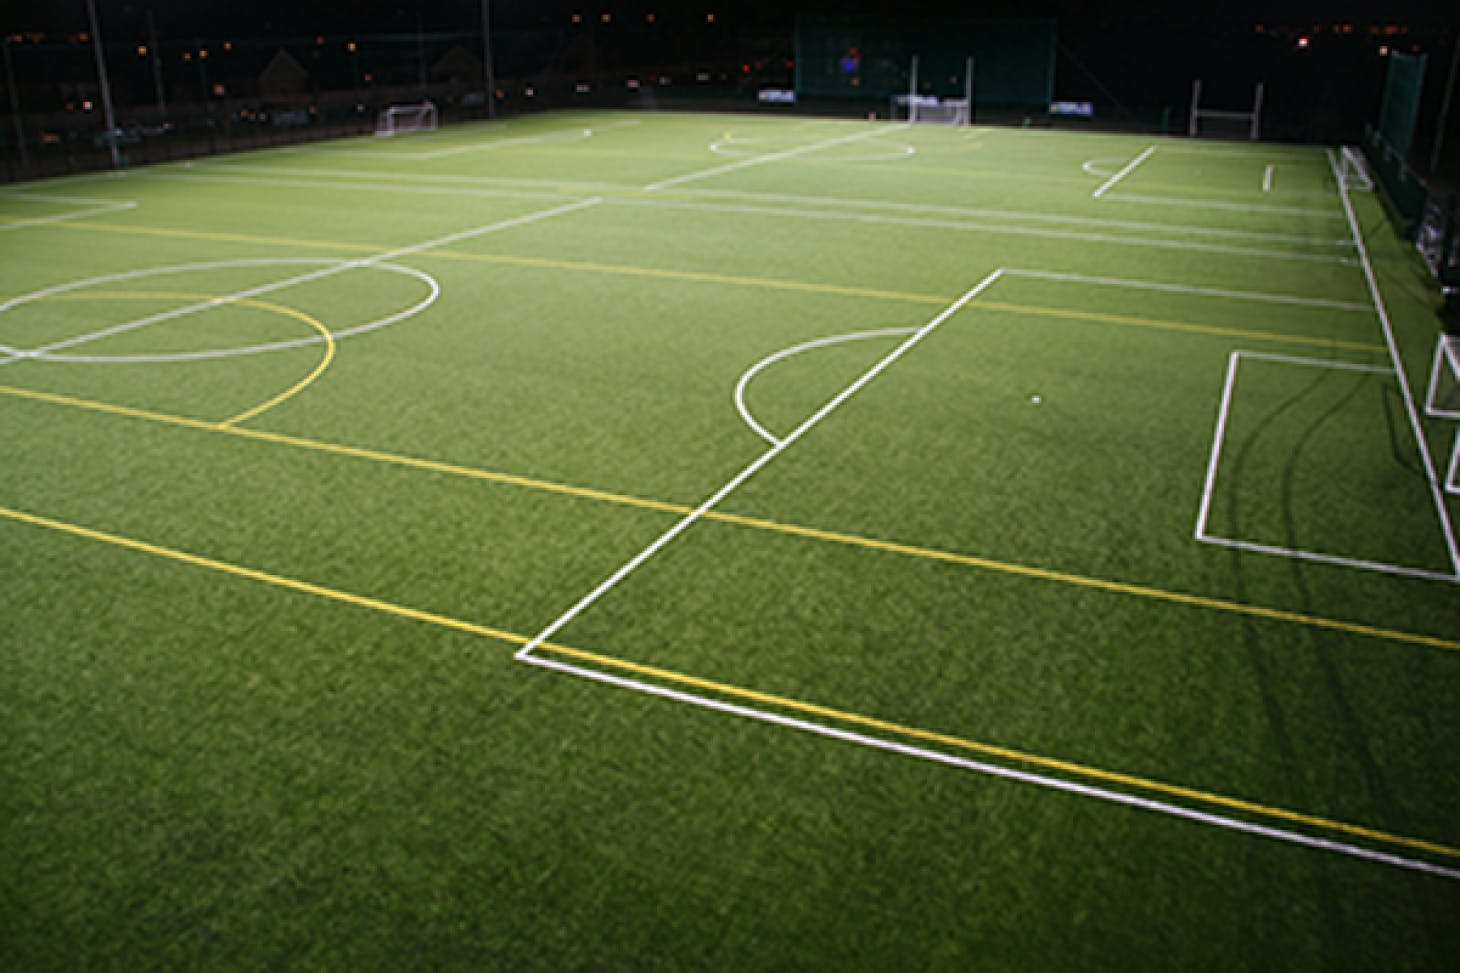 St. Benildus College Full size | Astroturf gaa pitch